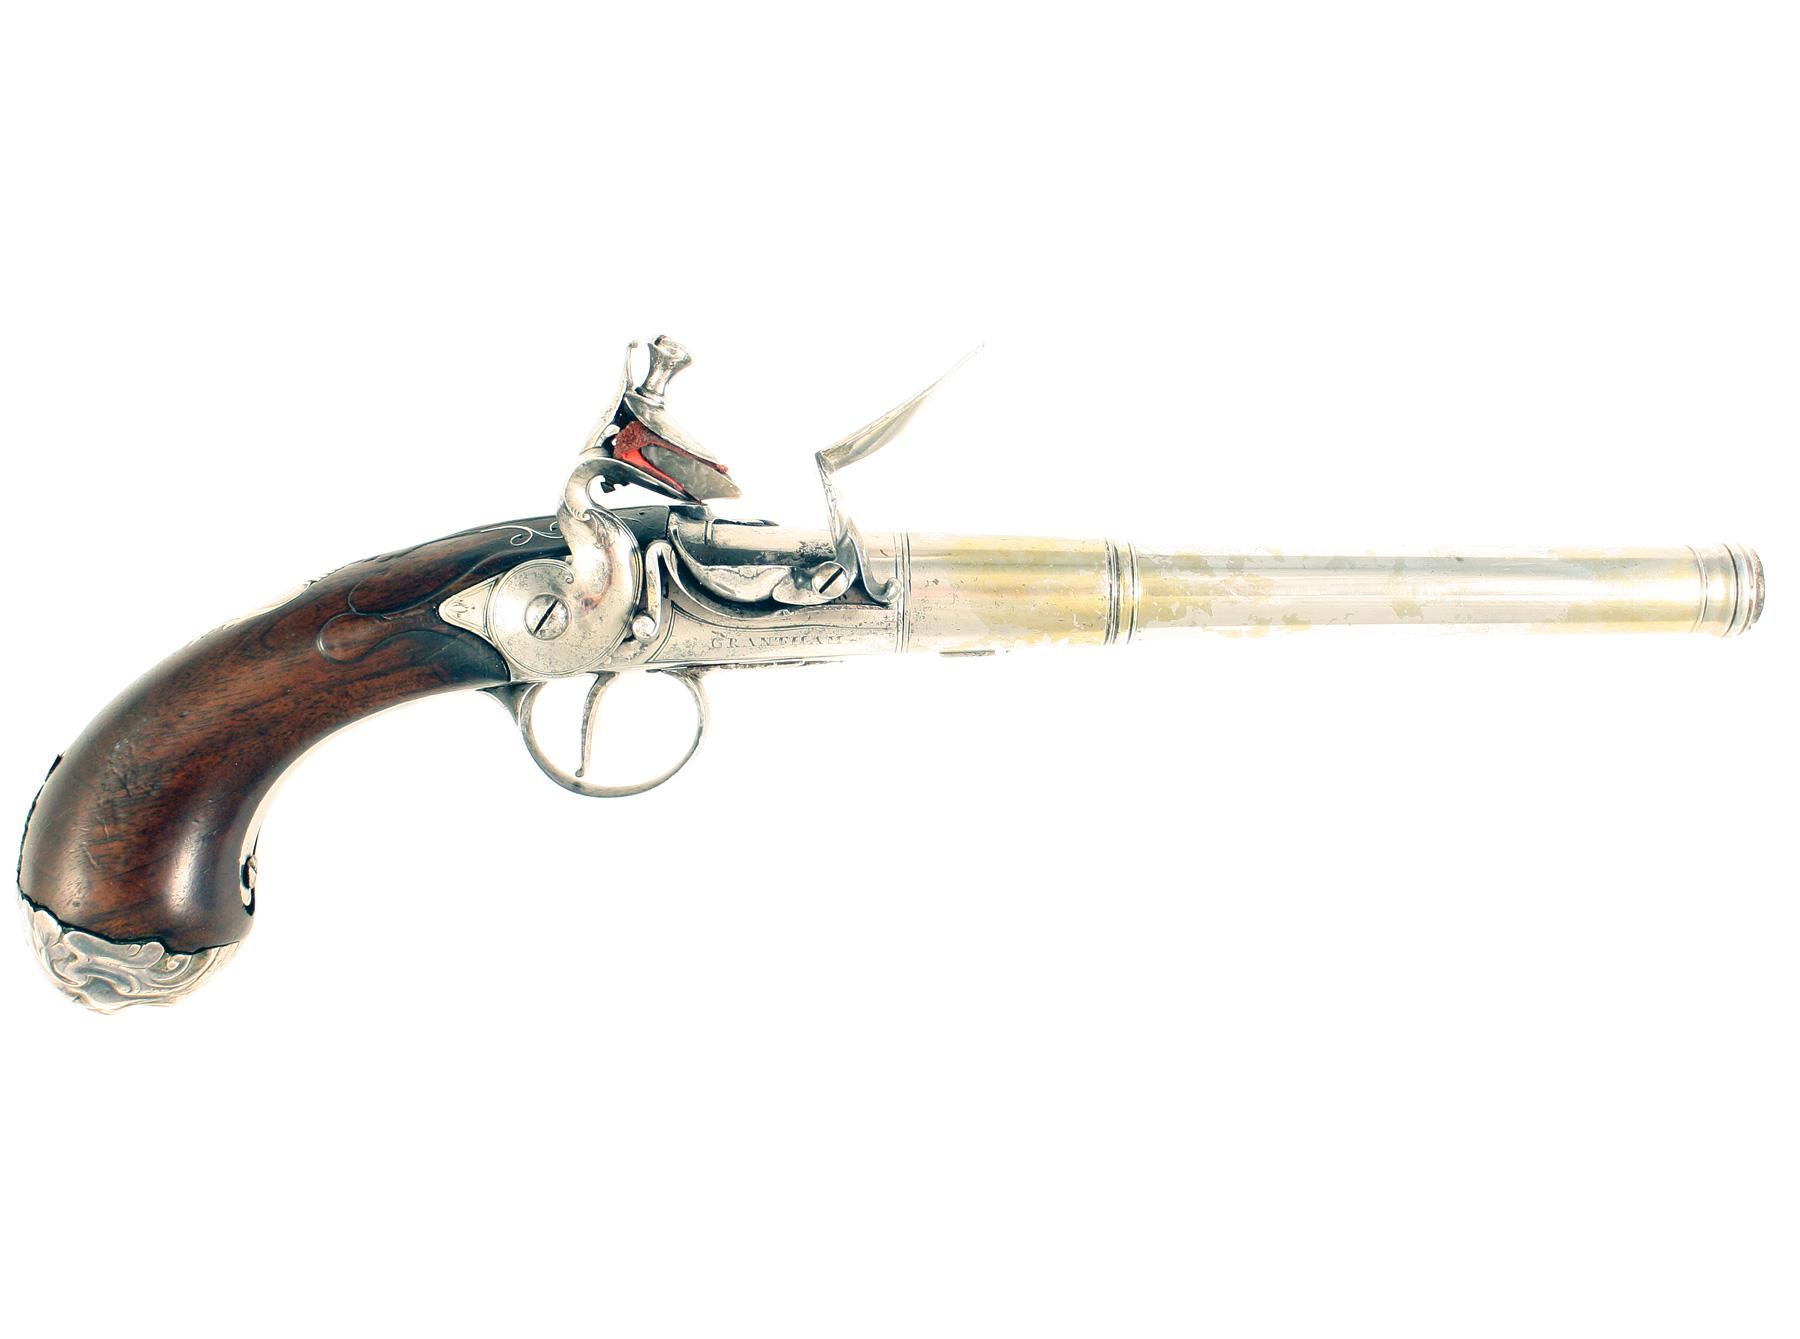 A Queen Anne Pistol by Newton of Grantham